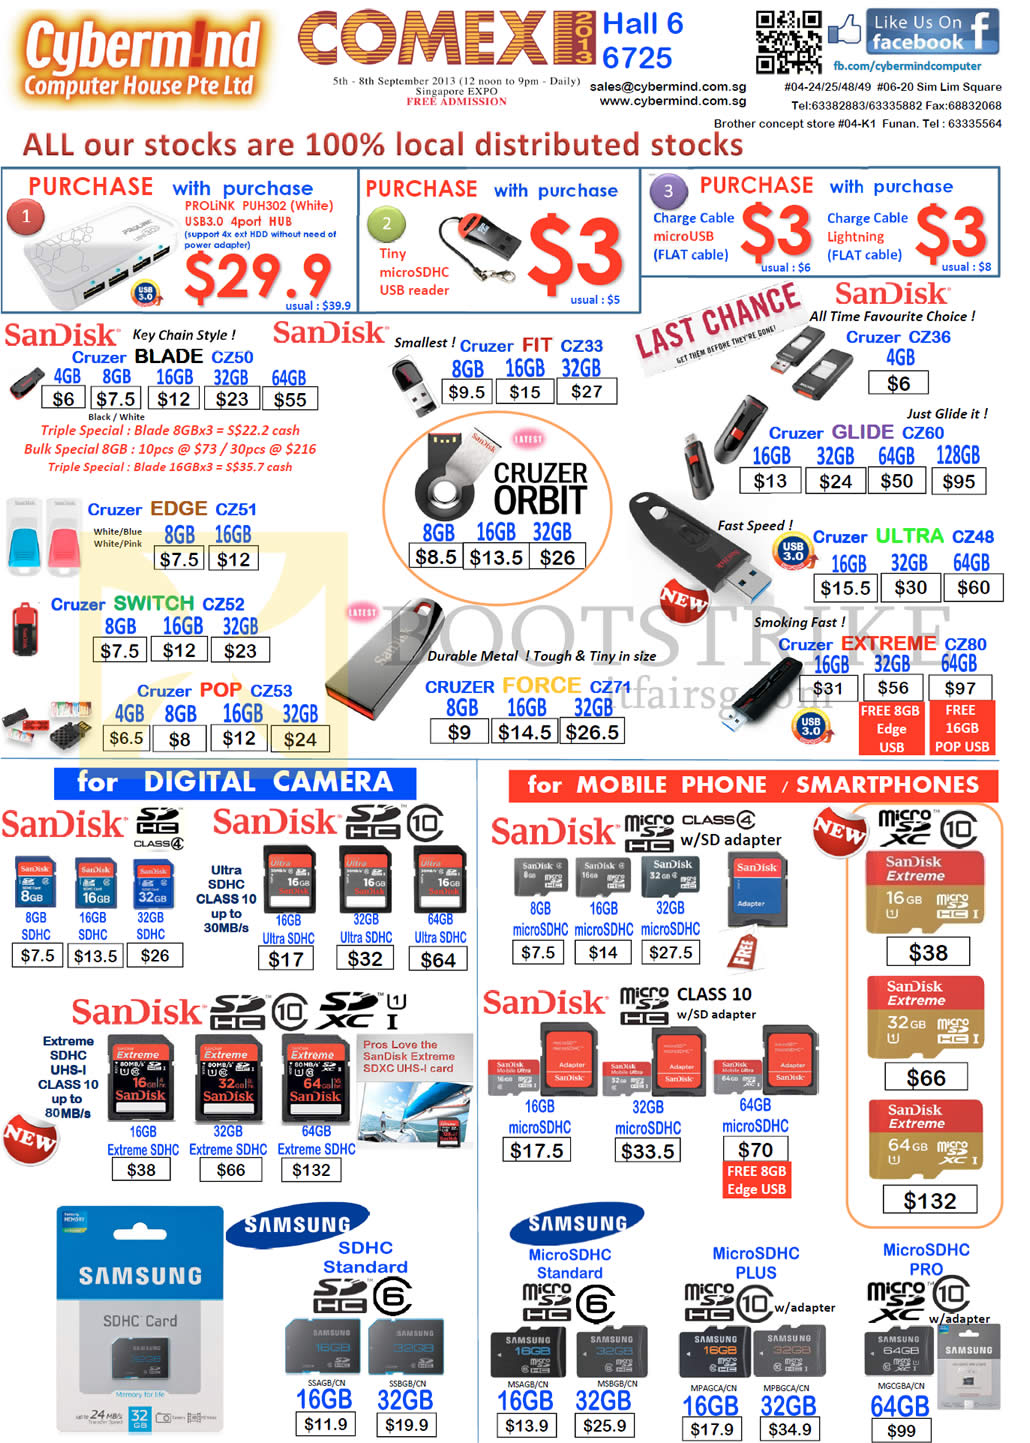 COMEX 2013 price list image brochure of Cybermind Flash Memory Sandisk Cruzer Blade 4GB 8GB 16GB 32GB 64GB, Fit Edge Switch Pop Glide Ultra Extreme Force Orbit, SDHC Samsung, MicroSD, MicroSDHC Pro